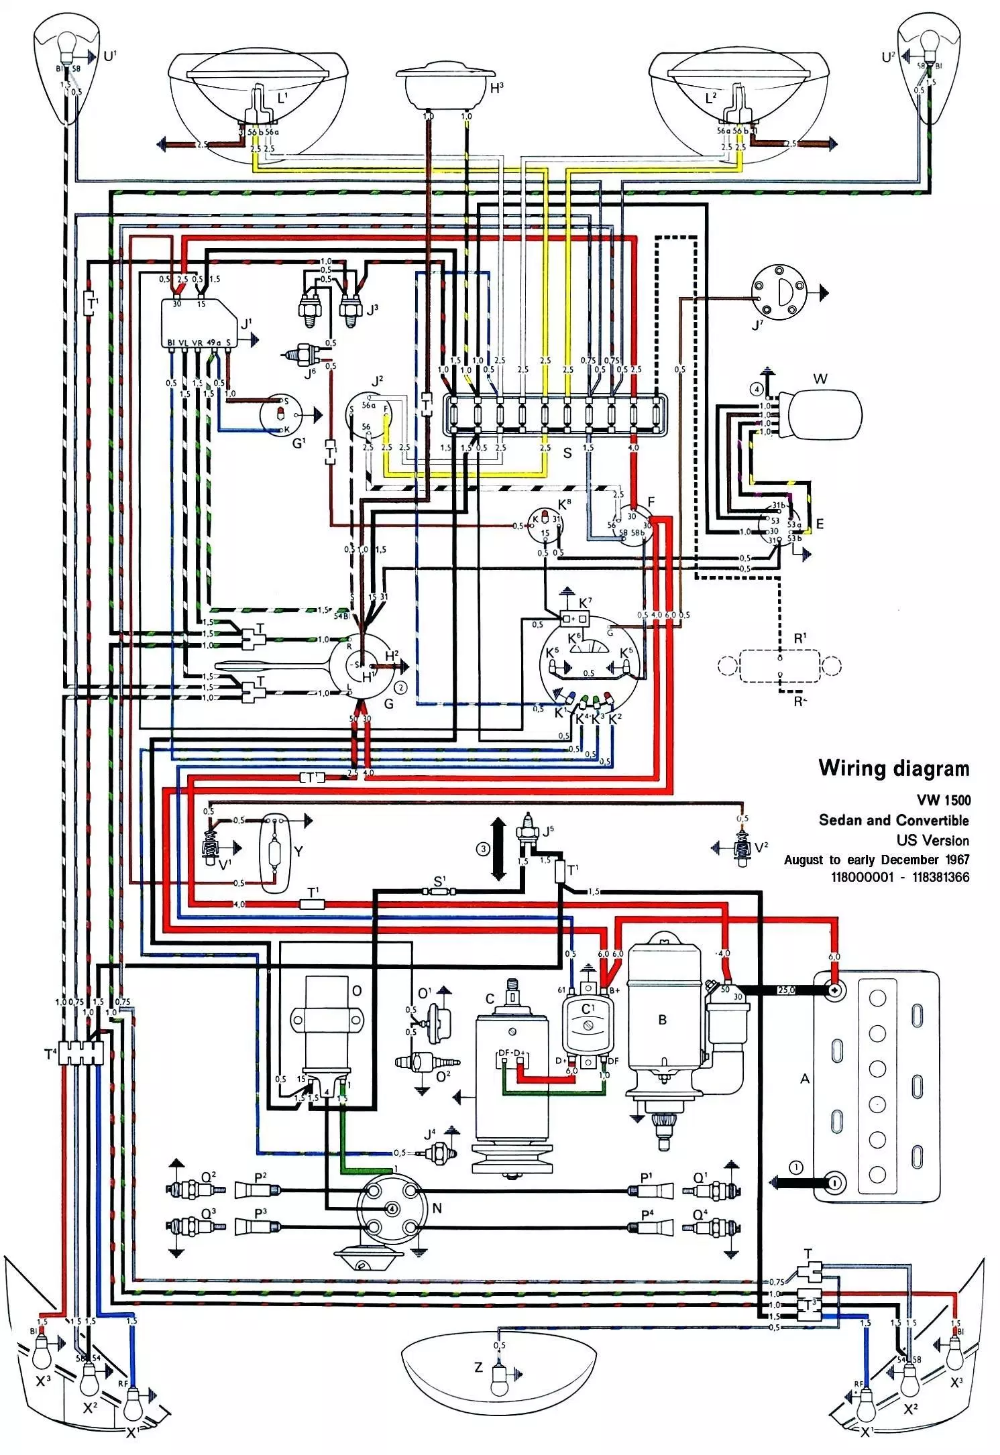 vw ignition switch wiring diagram - google search | electrical diagram,  electrical wiring diagram, diagram  pinterest